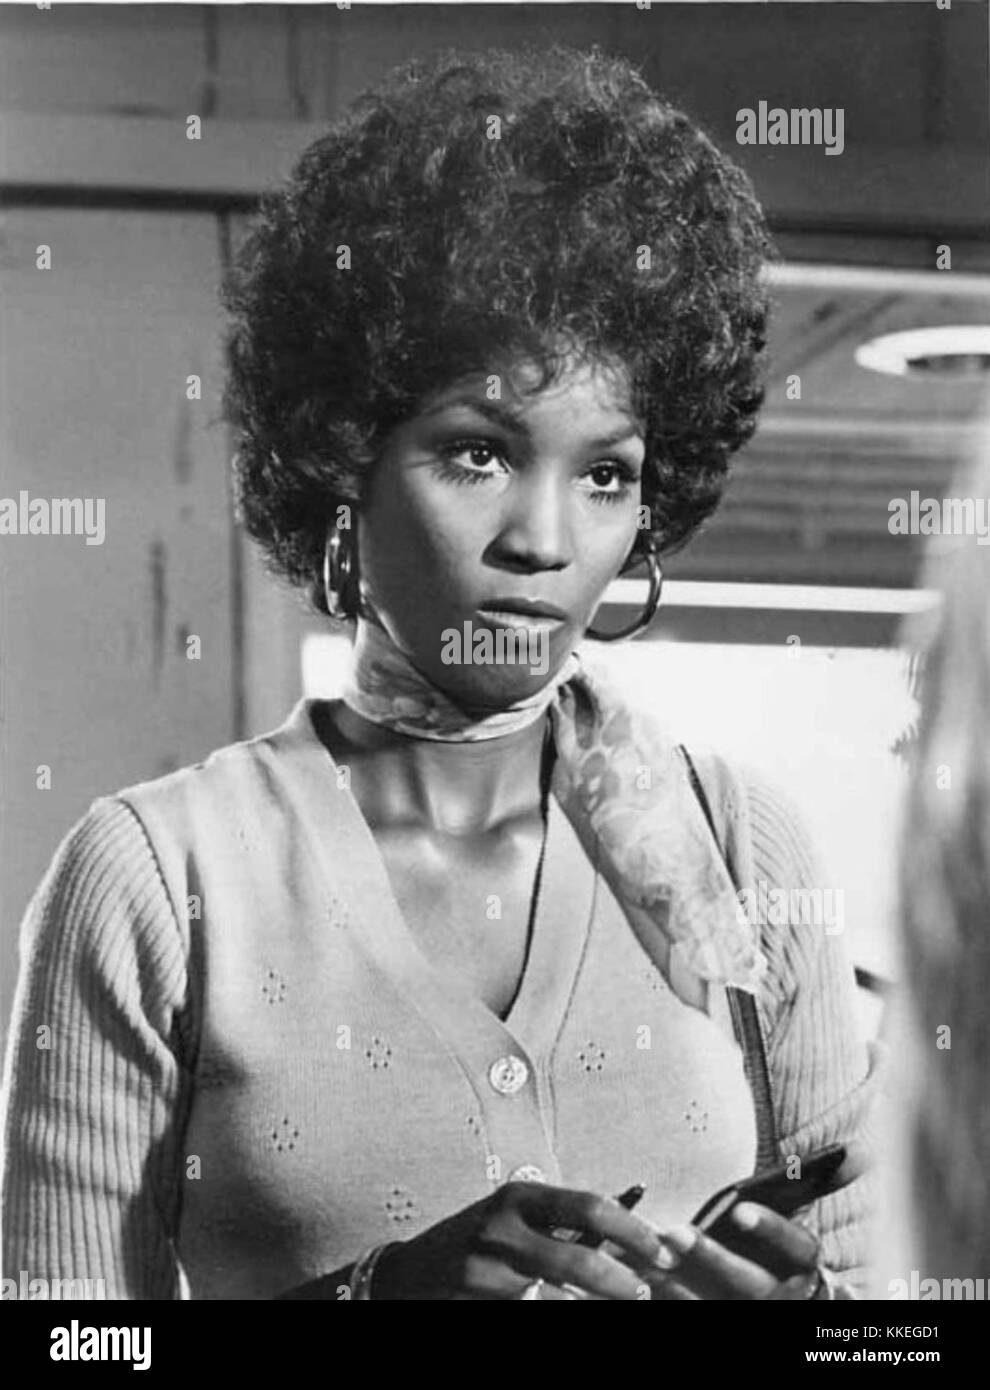 Teresa Graves nudes (73 photos), Topless, Fappening, Feet, cleavage 2006